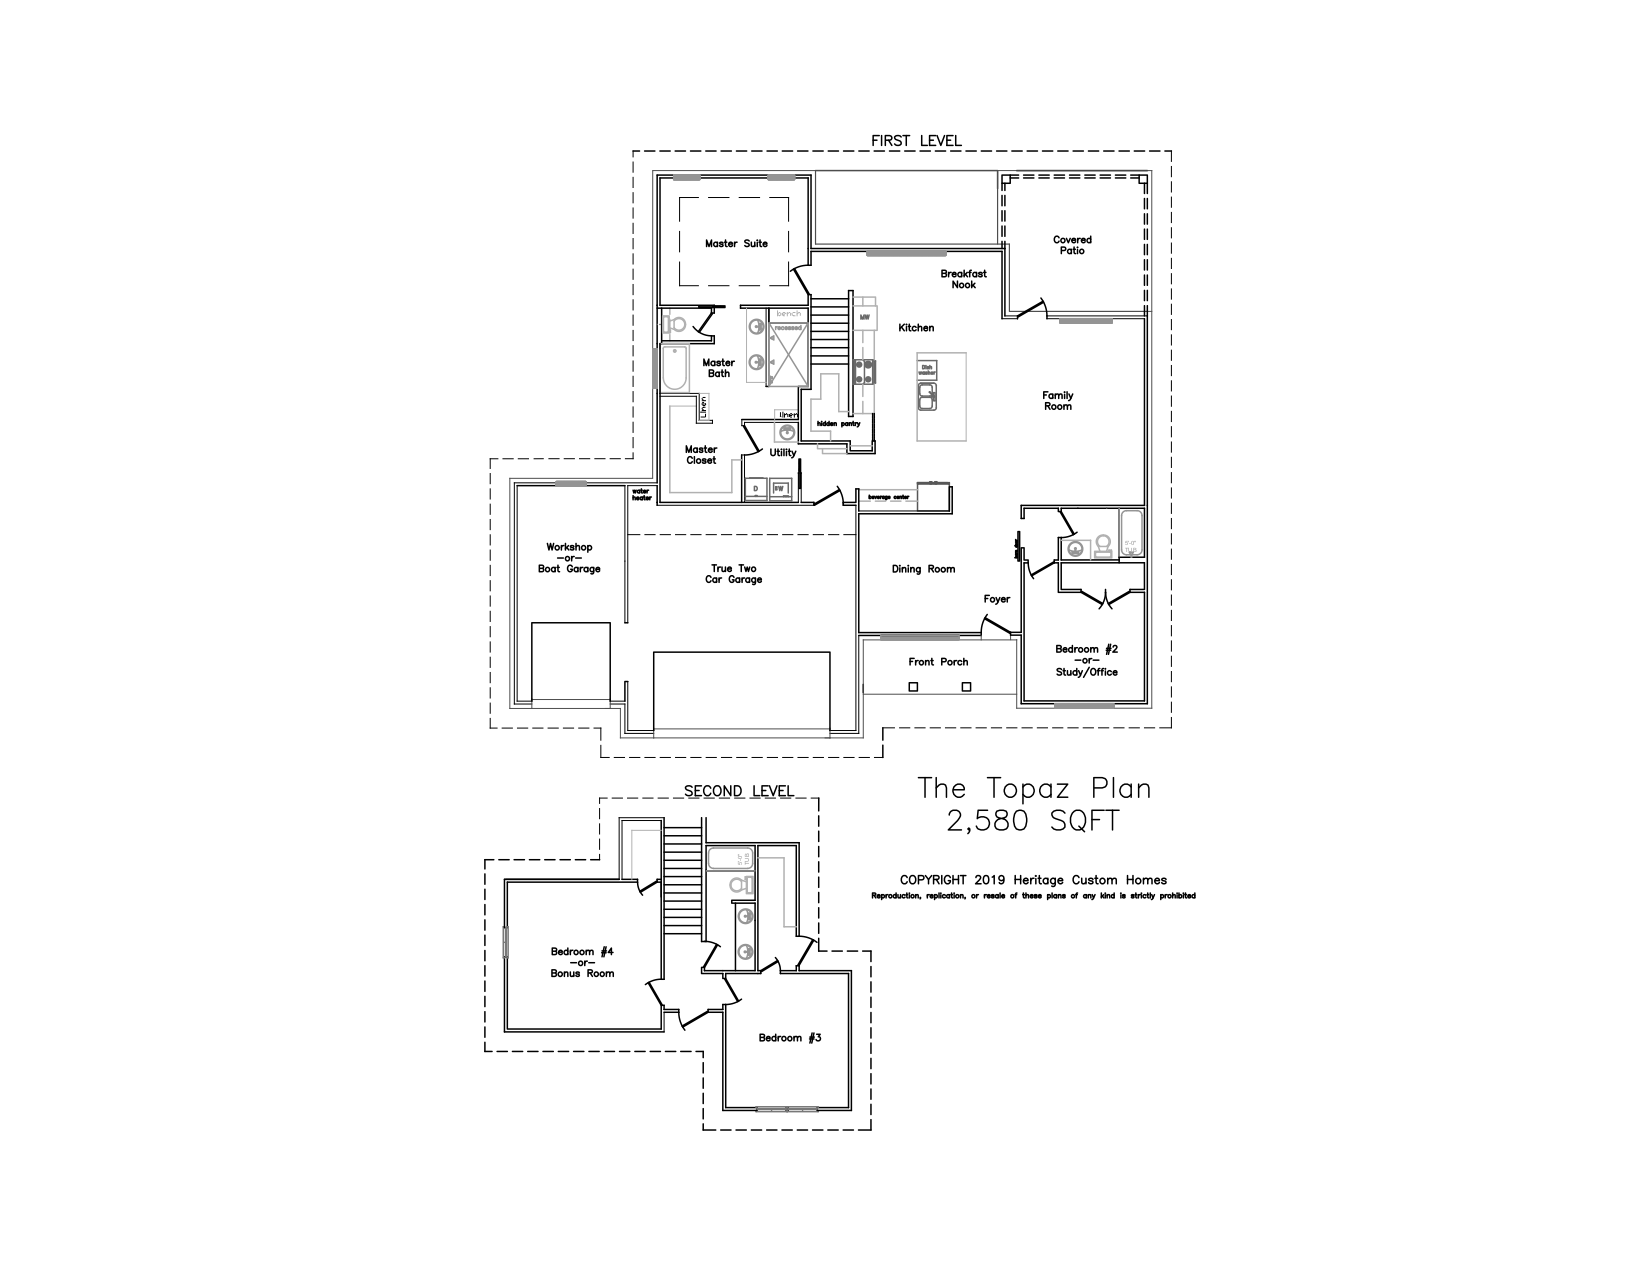 The Topaz Floorplan